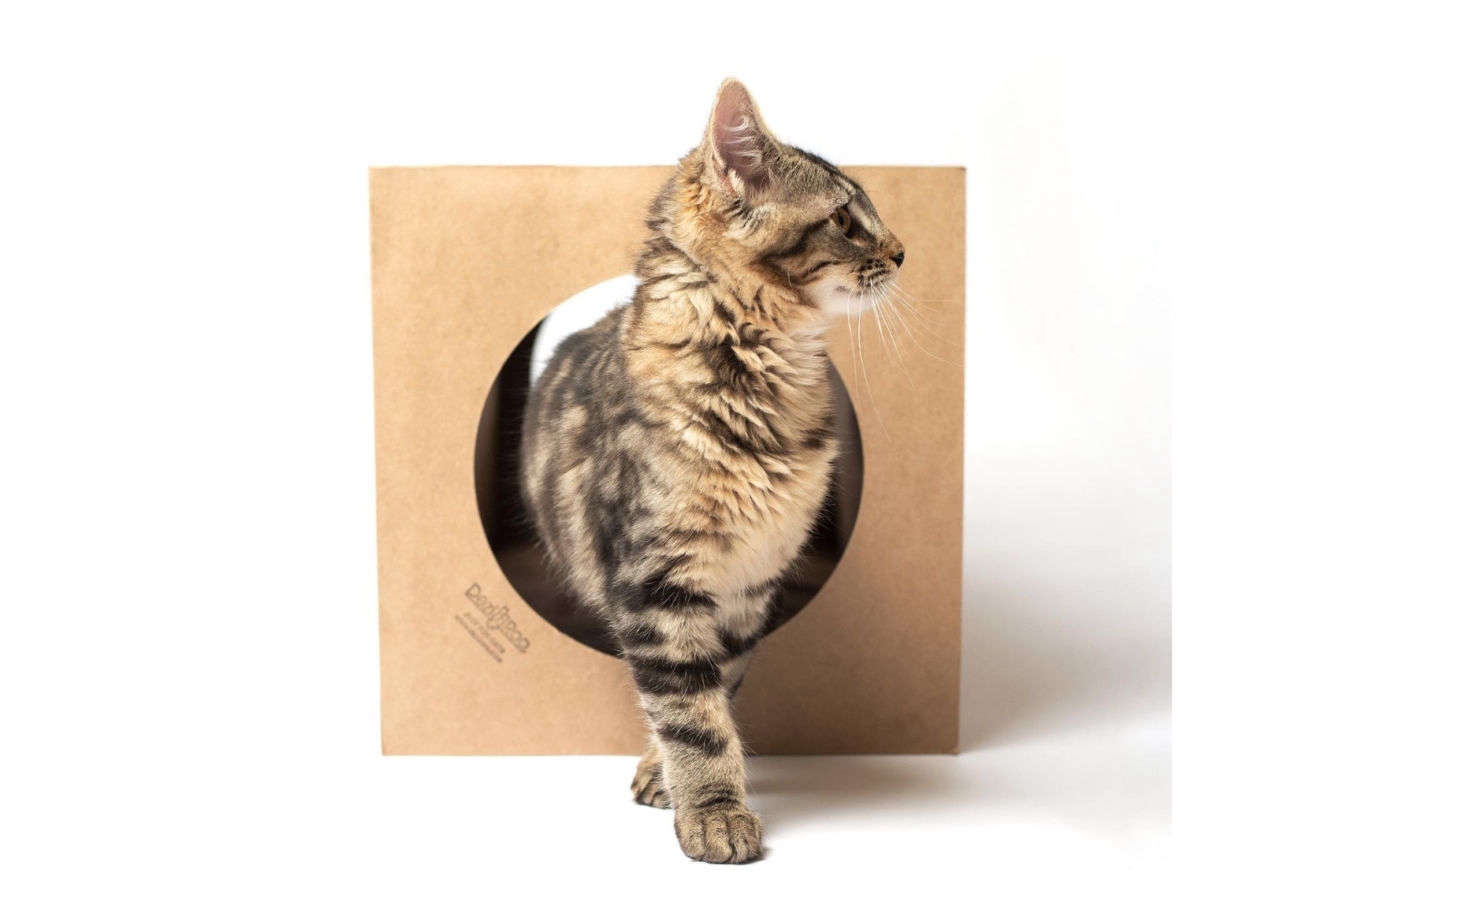 A longer, more durable version of the paper grocery bags that cats adore, this nearly 3-foot-long Cat Tunnel was designed by a veterinarian and collapses for easy storage. It&#8